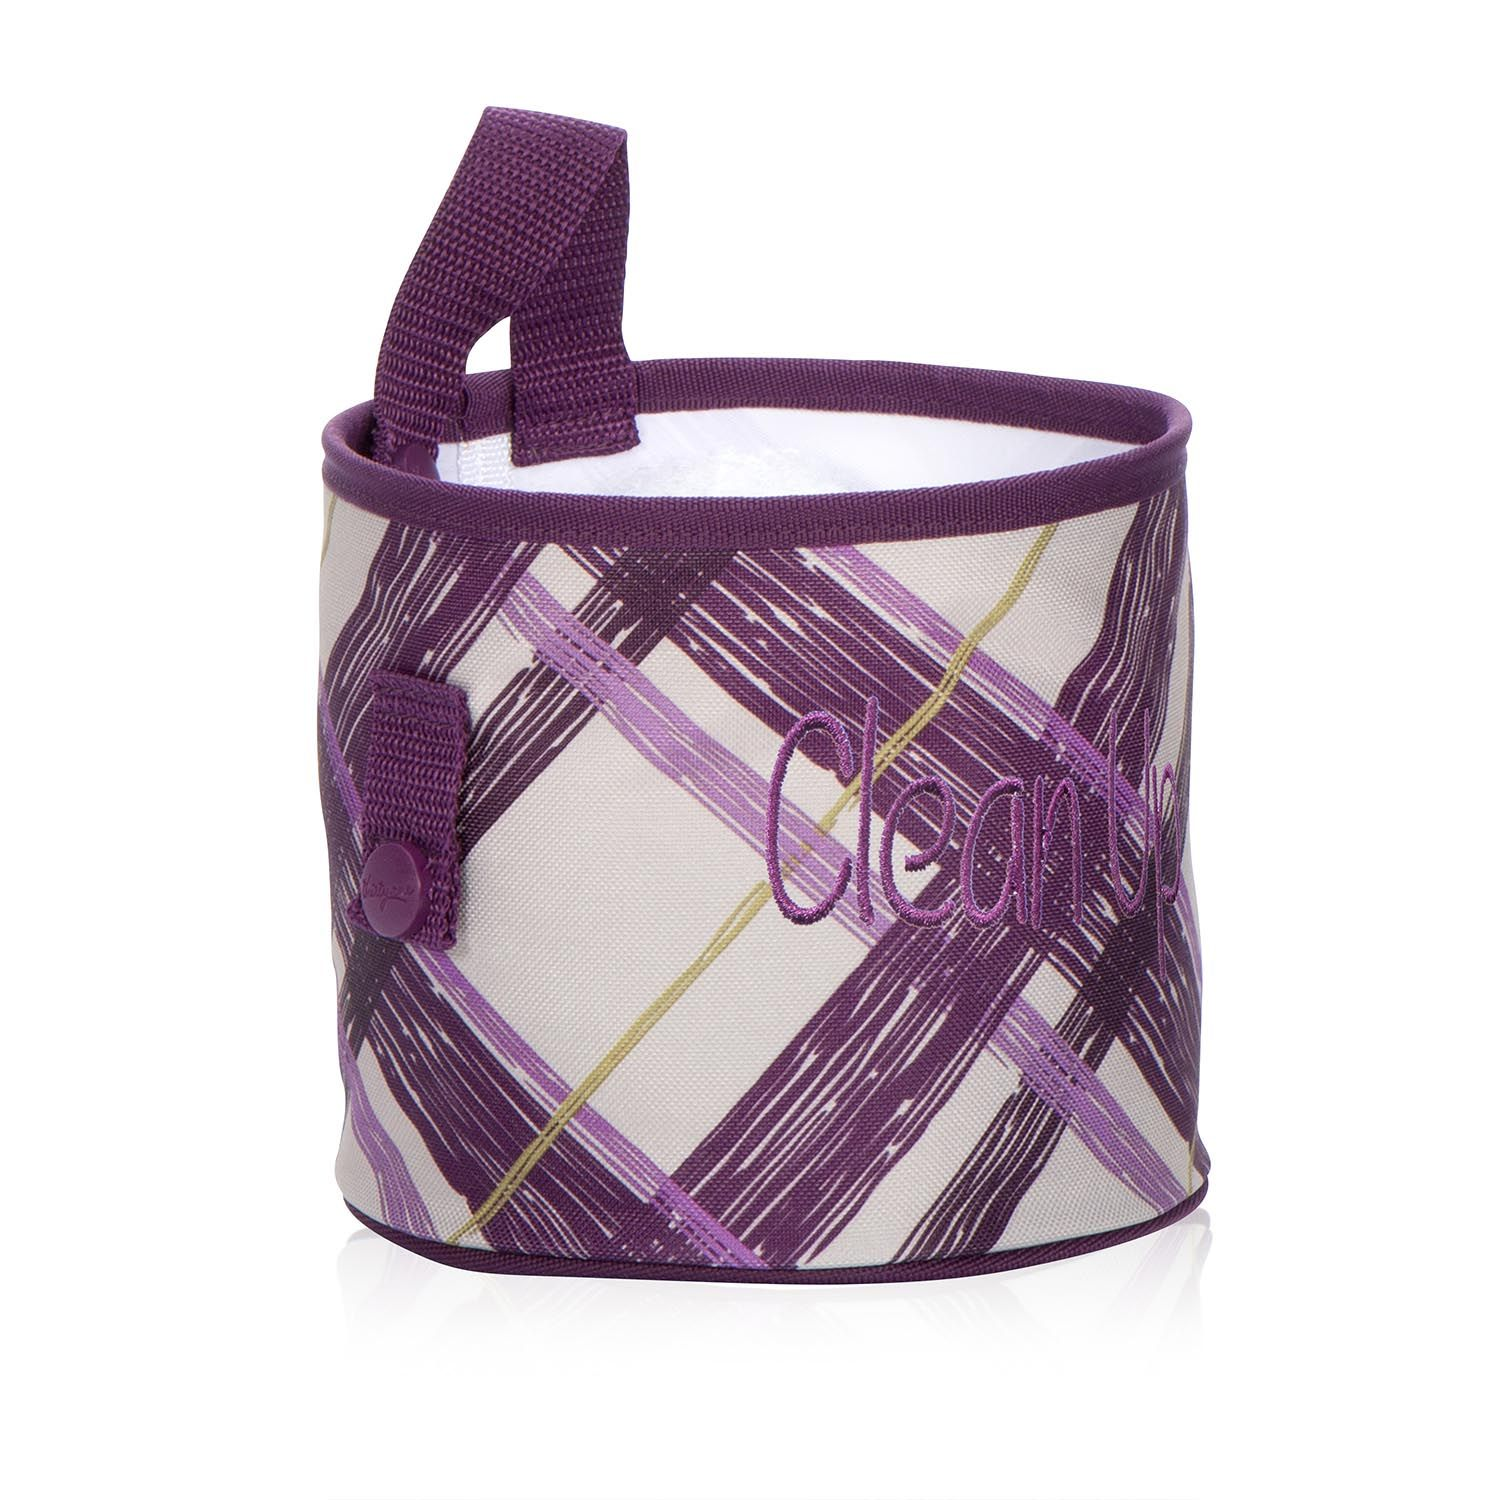 Oh snap bin ideas - Oh Snap Bin In Plum Plaid For 10 Snaps Are The Secret Of This